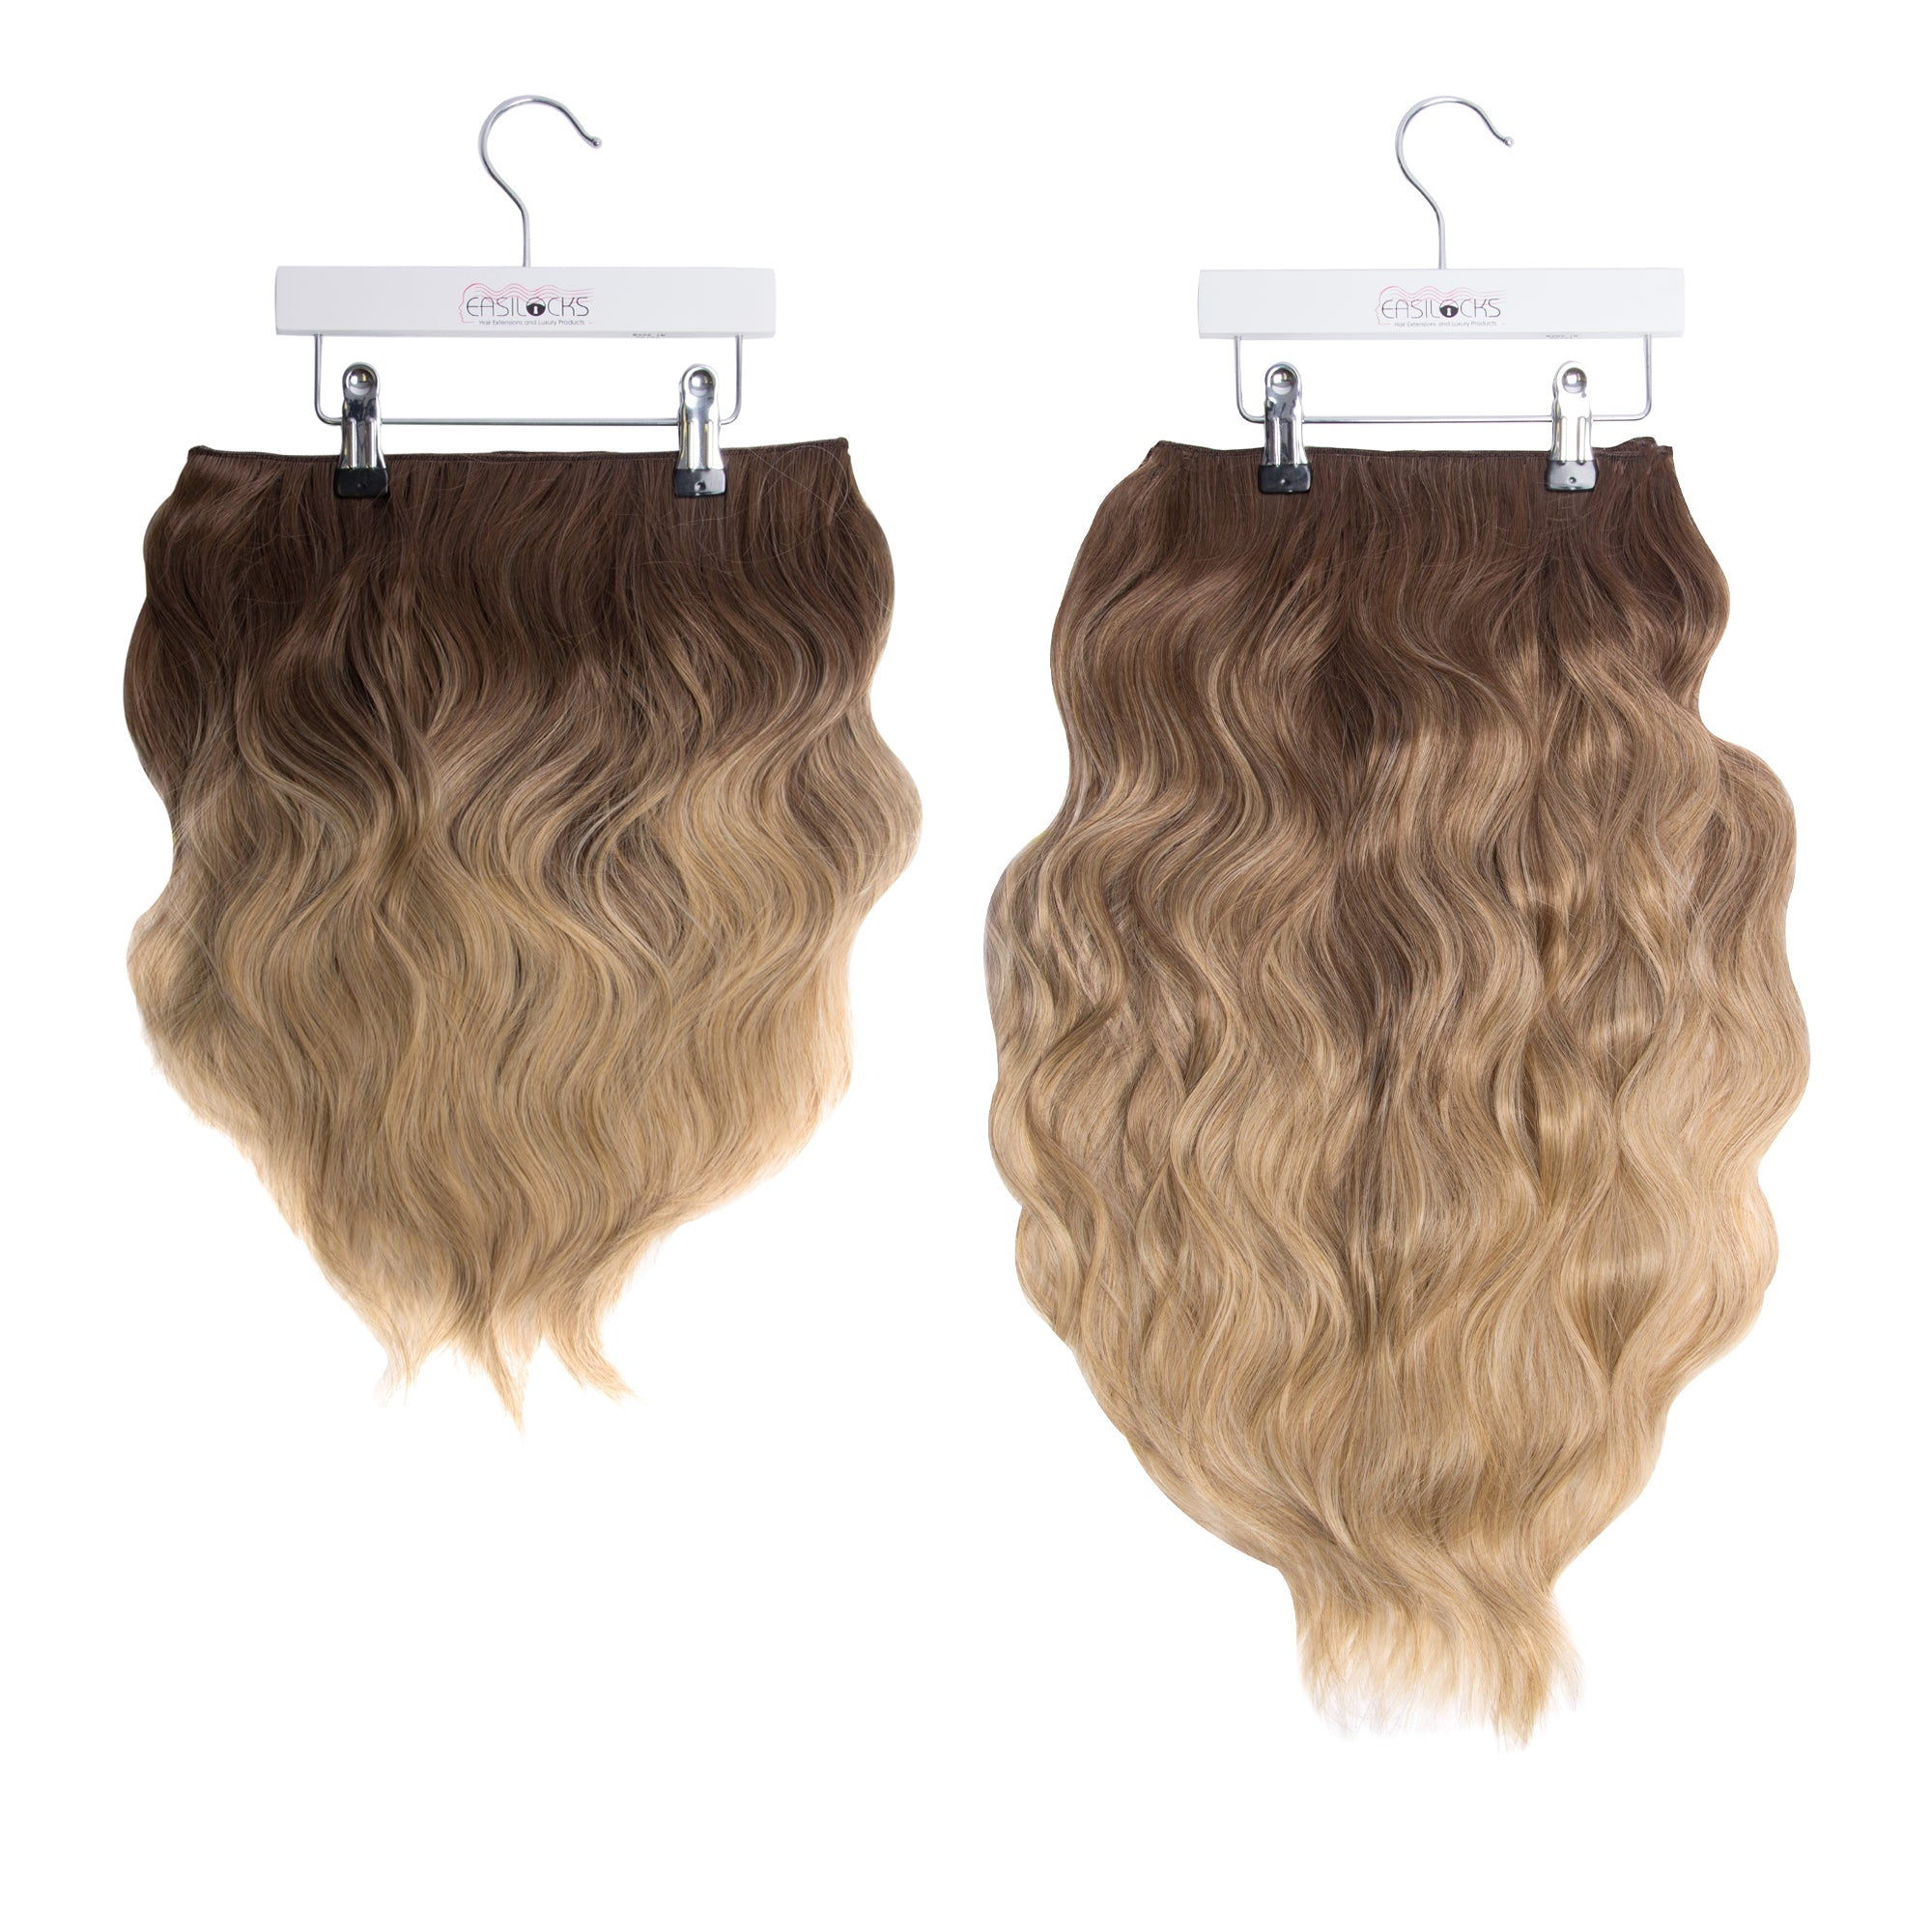 "Miracle Makeover HD Fibre Clip In Hair Extensions - 14"" & 22"" - Vanilla Balayage (3664509665360)"